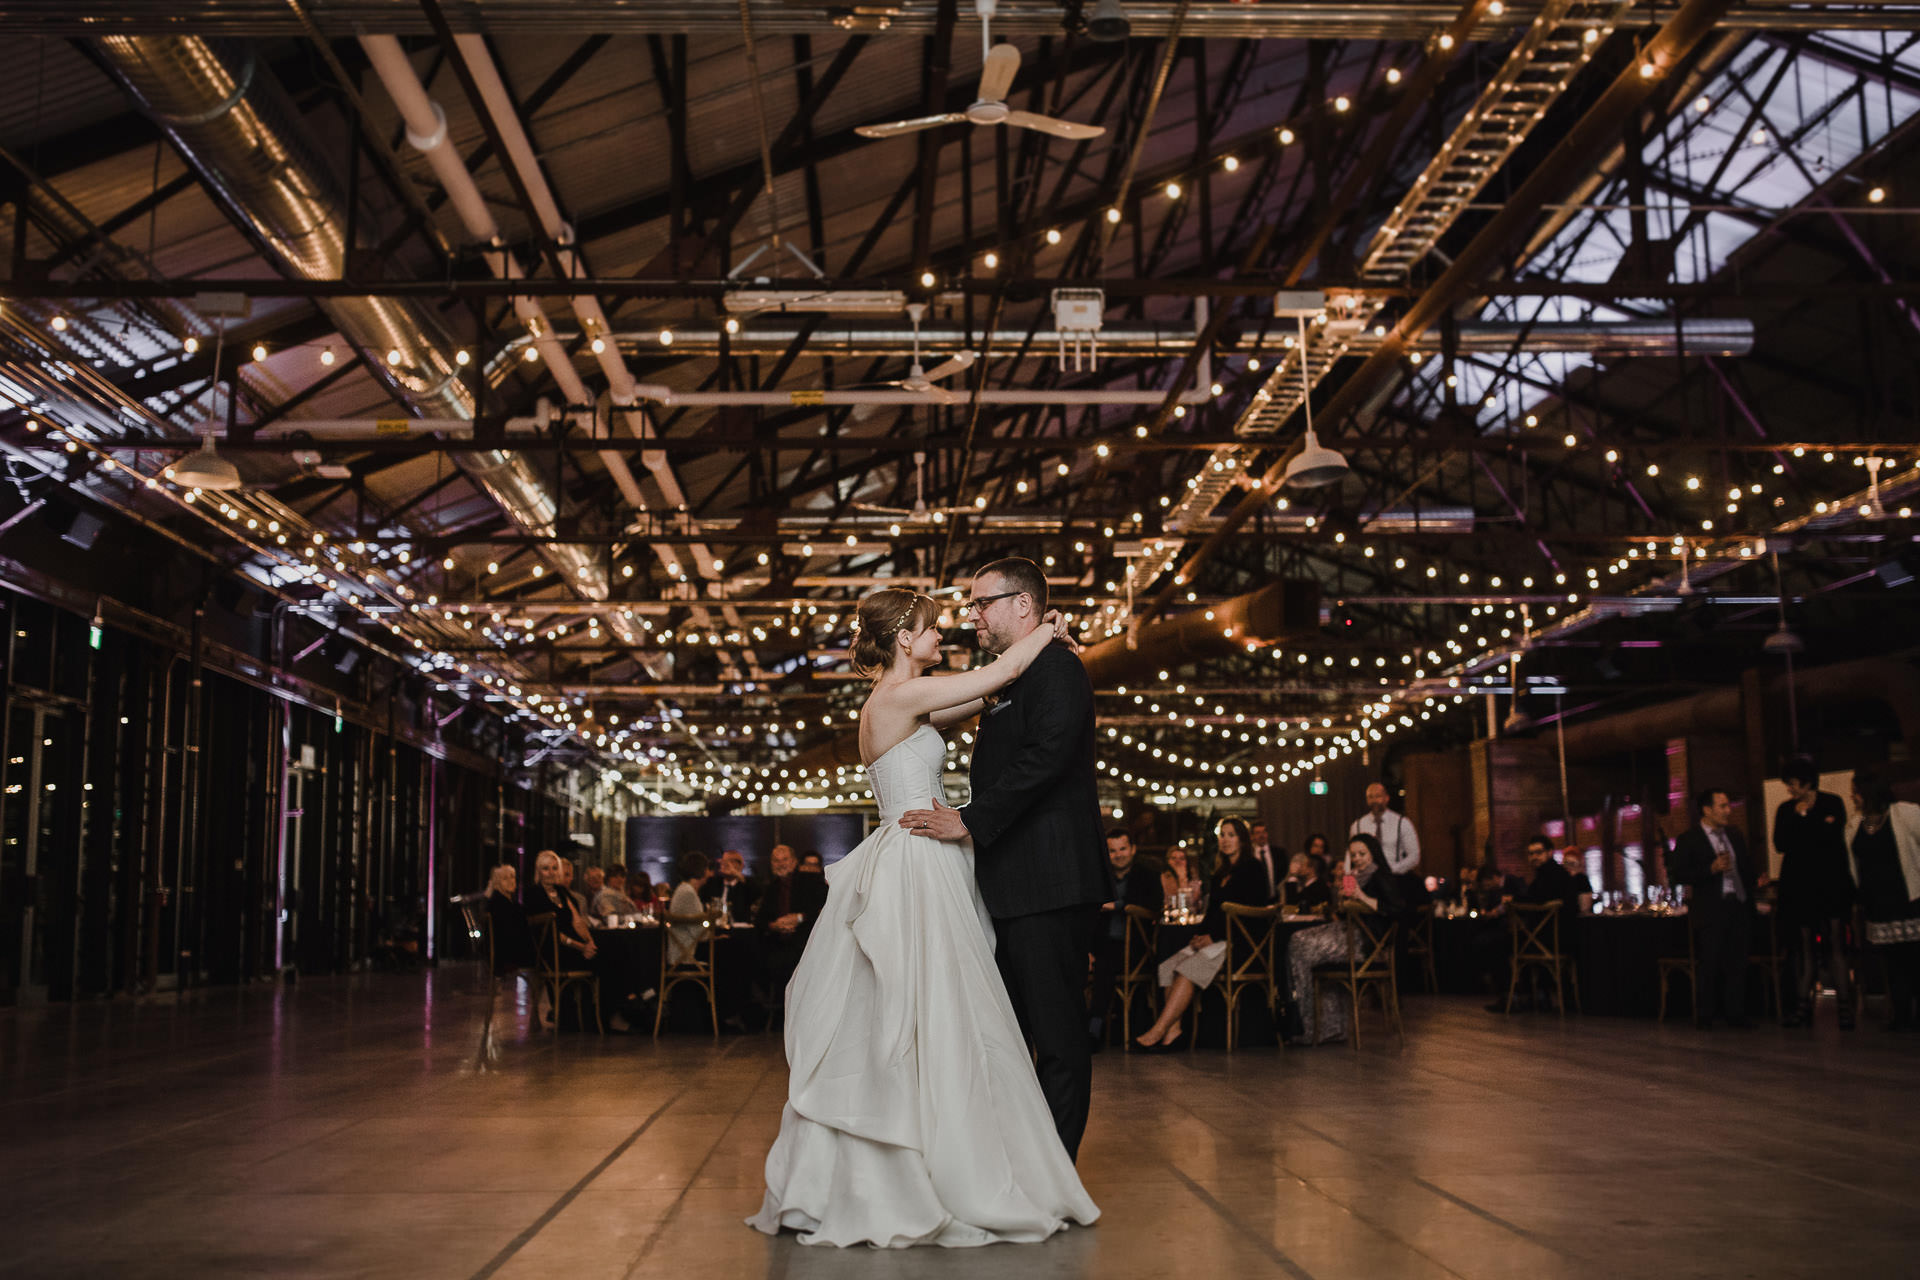 Evergreen Brickworks wedding photographer - first dance